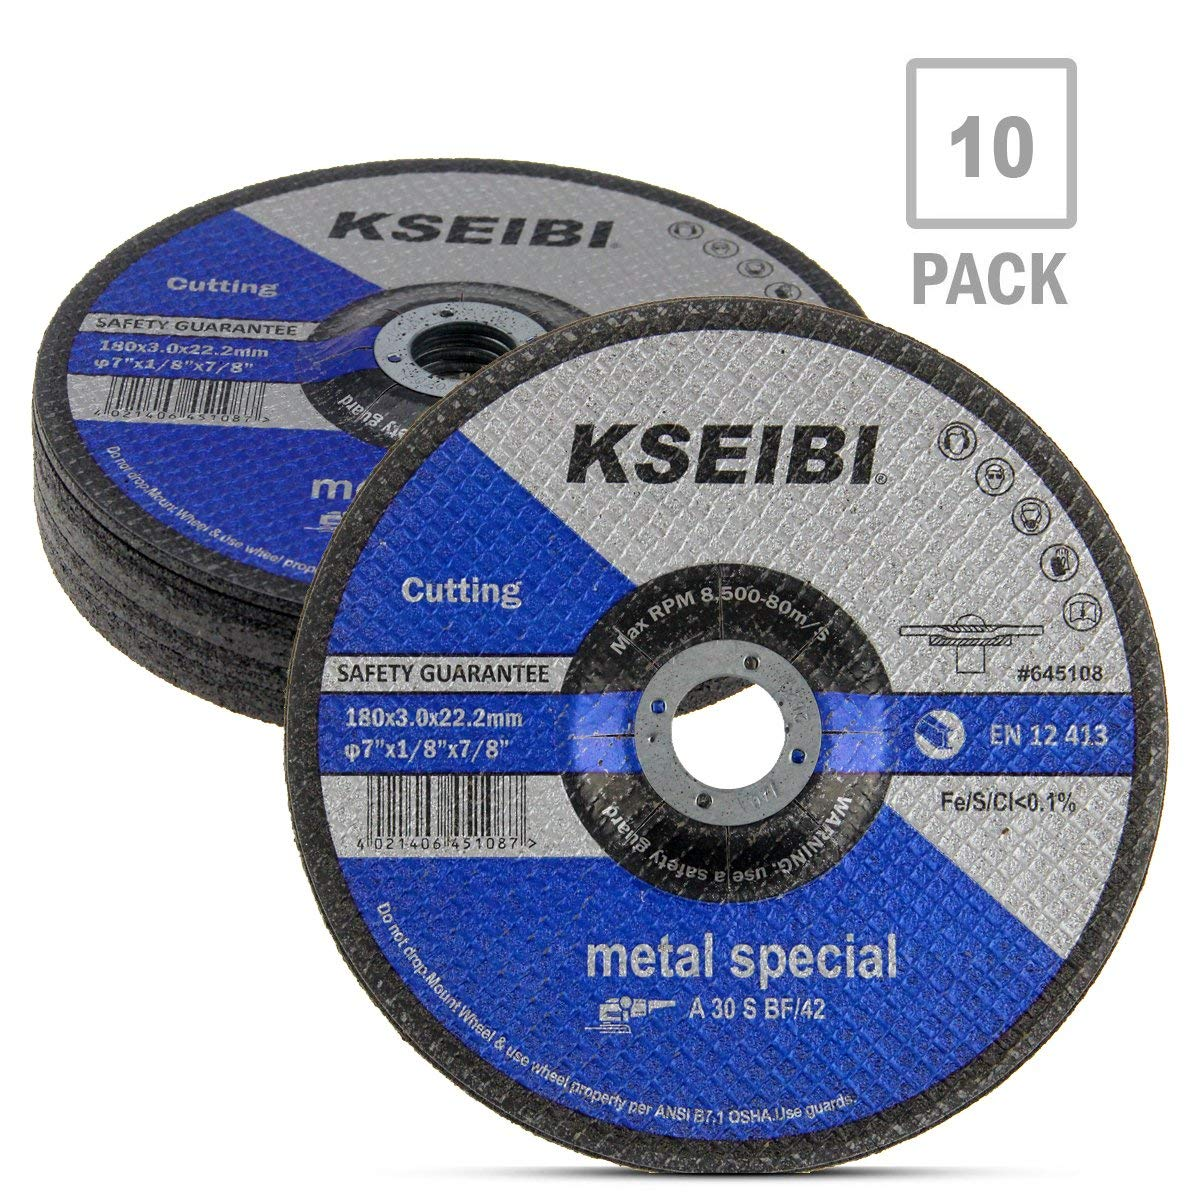 KSEIBI 645108 7-Inch by 1/8-Inch Metal Cutting and Grinding Disc Depressed Center Cut Off Grind Wheel, 7/8-Inch Arbor, 10-Pack